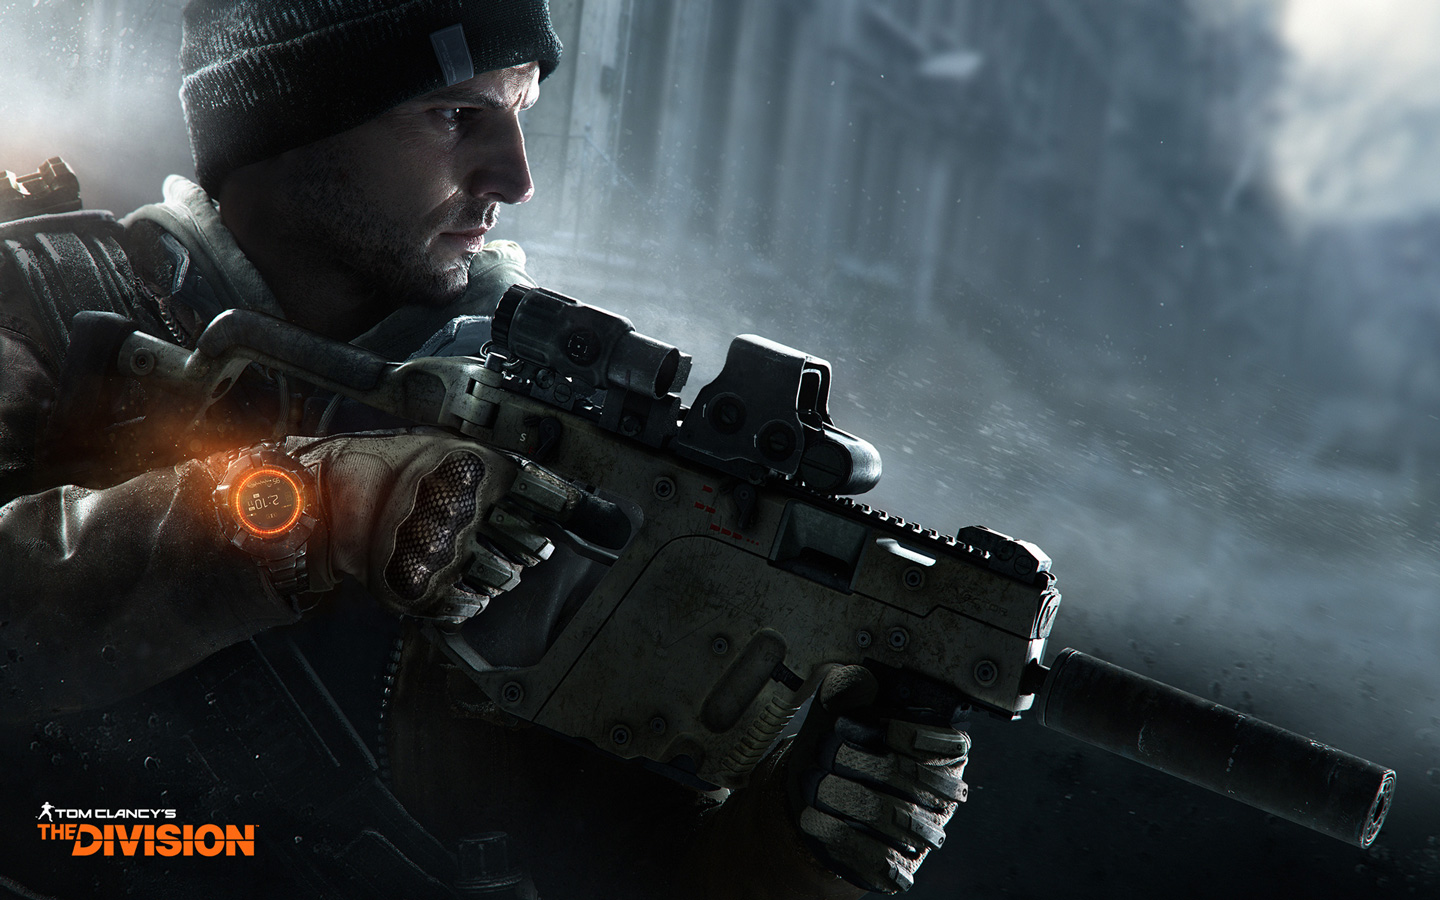 The Division Wallpaper in 1440x900